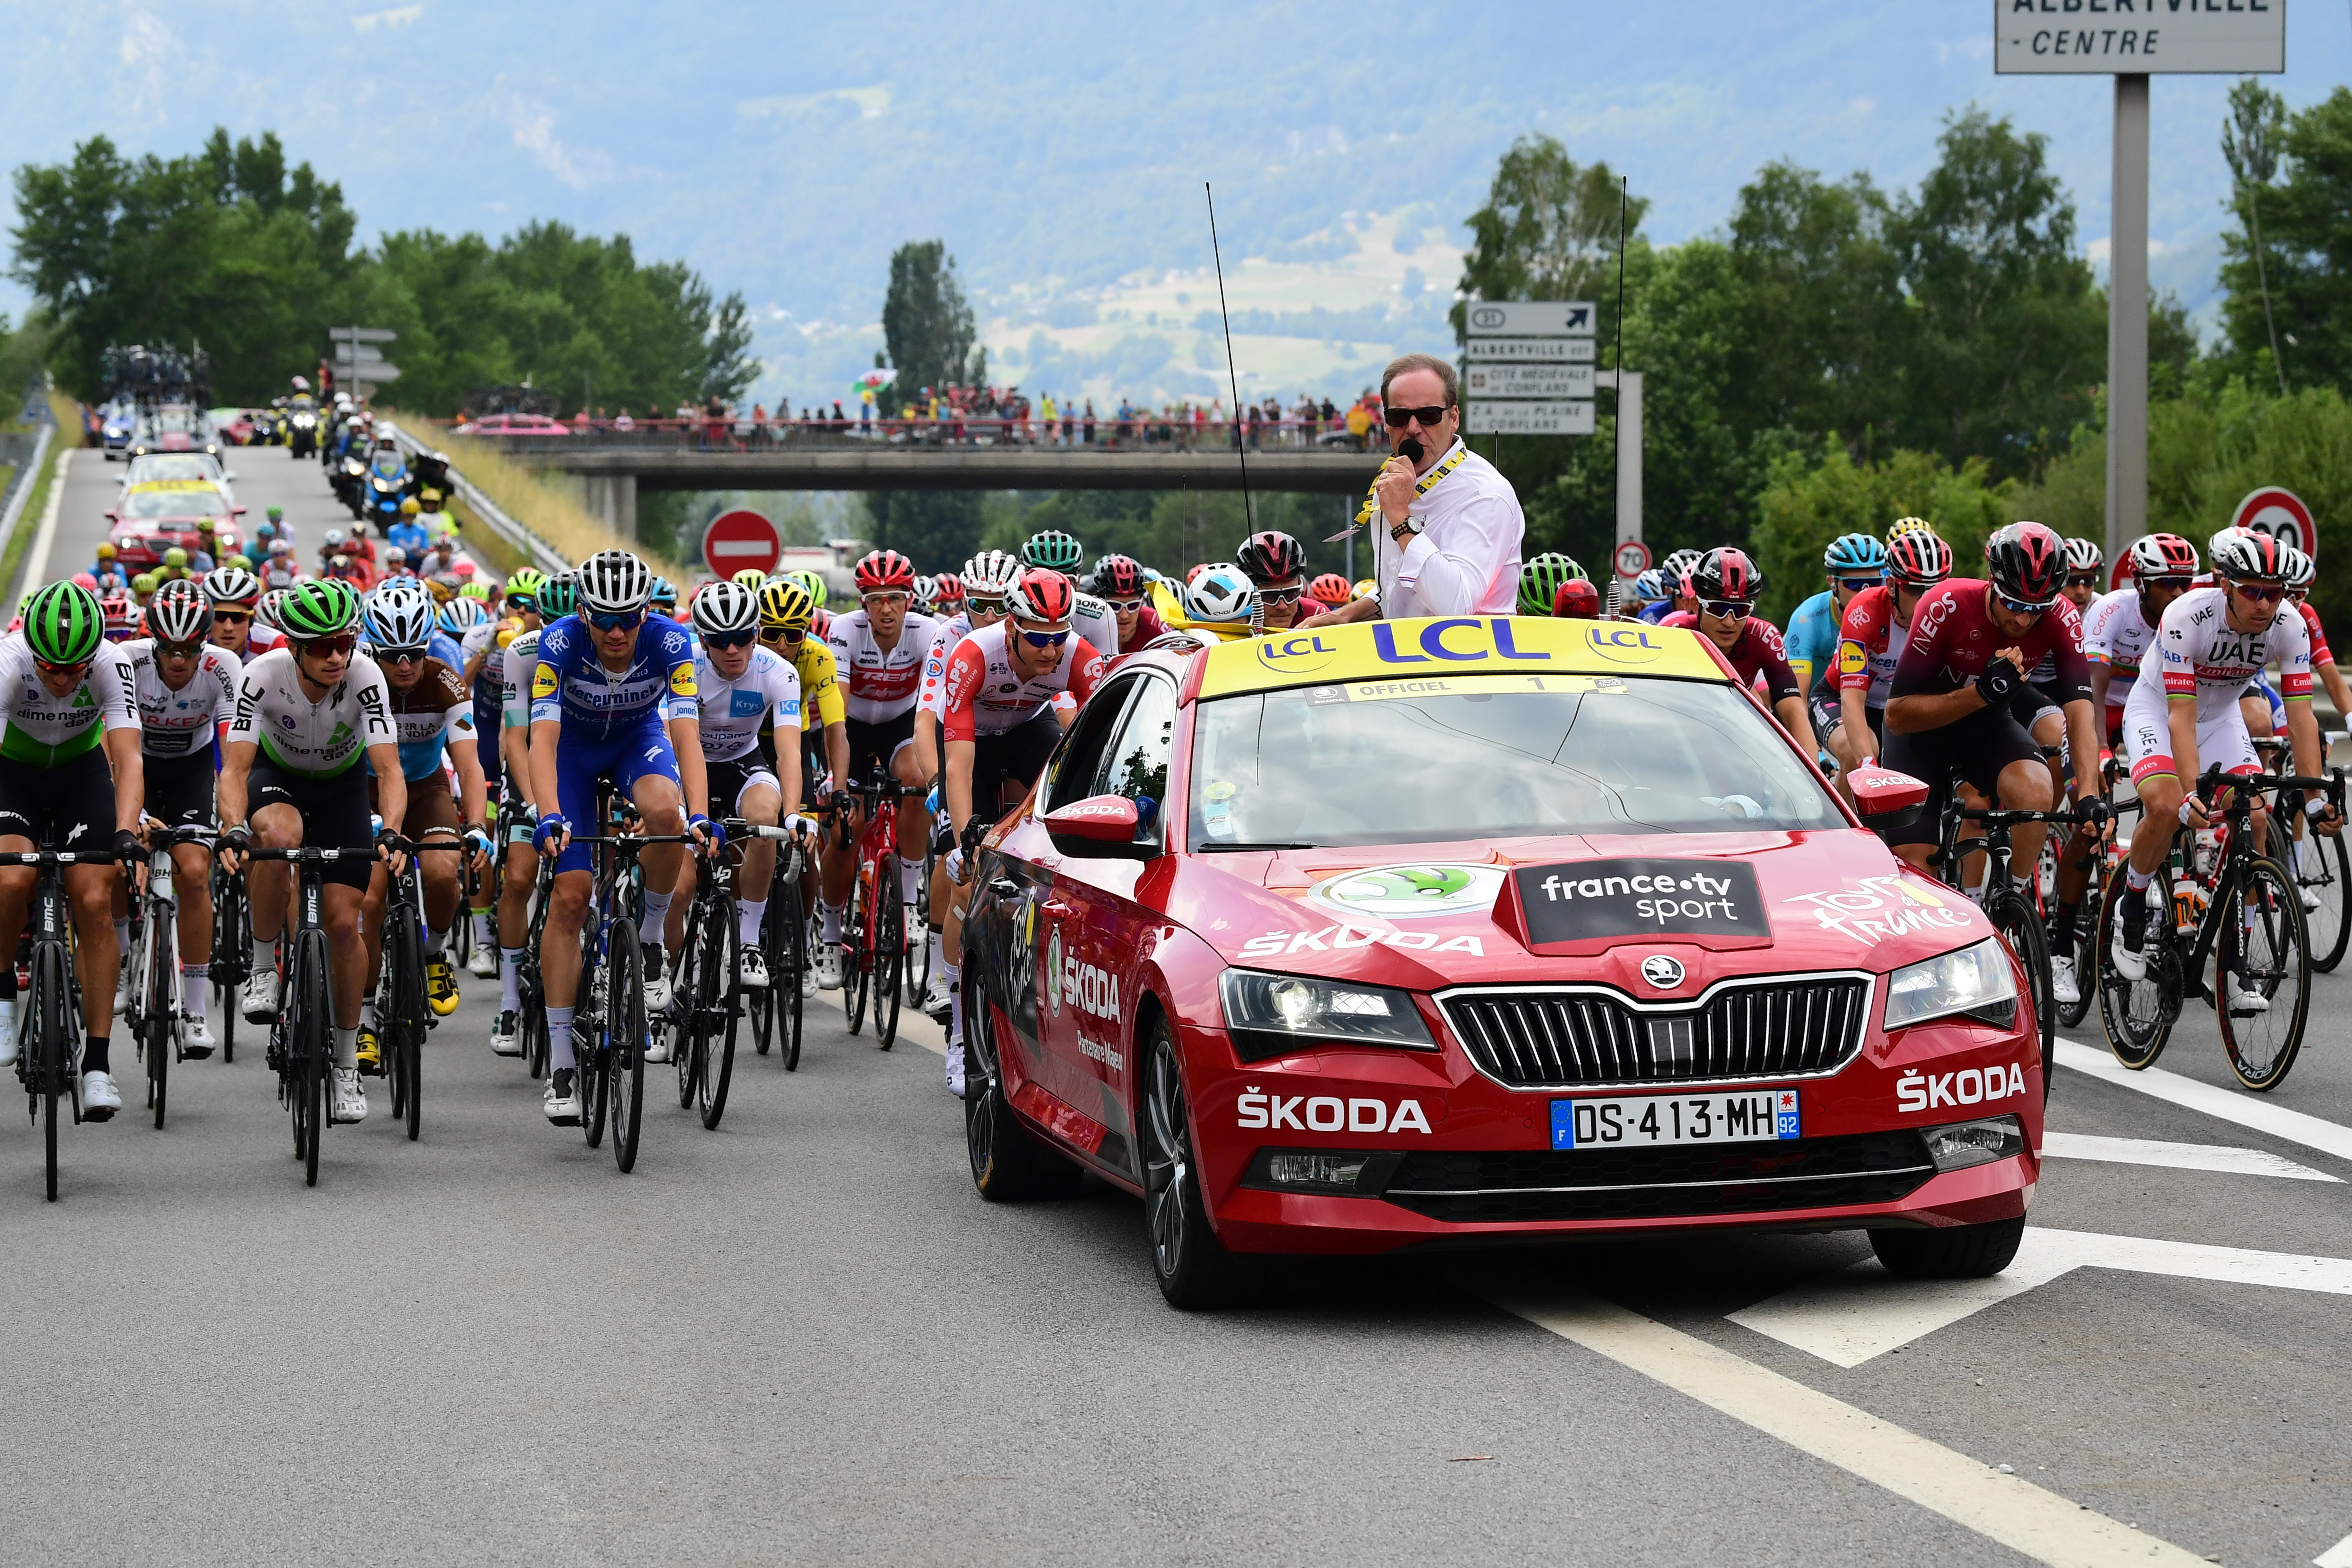 SKODA AUTO Official Main Partner of the Tour de France for 17th time - Image 1